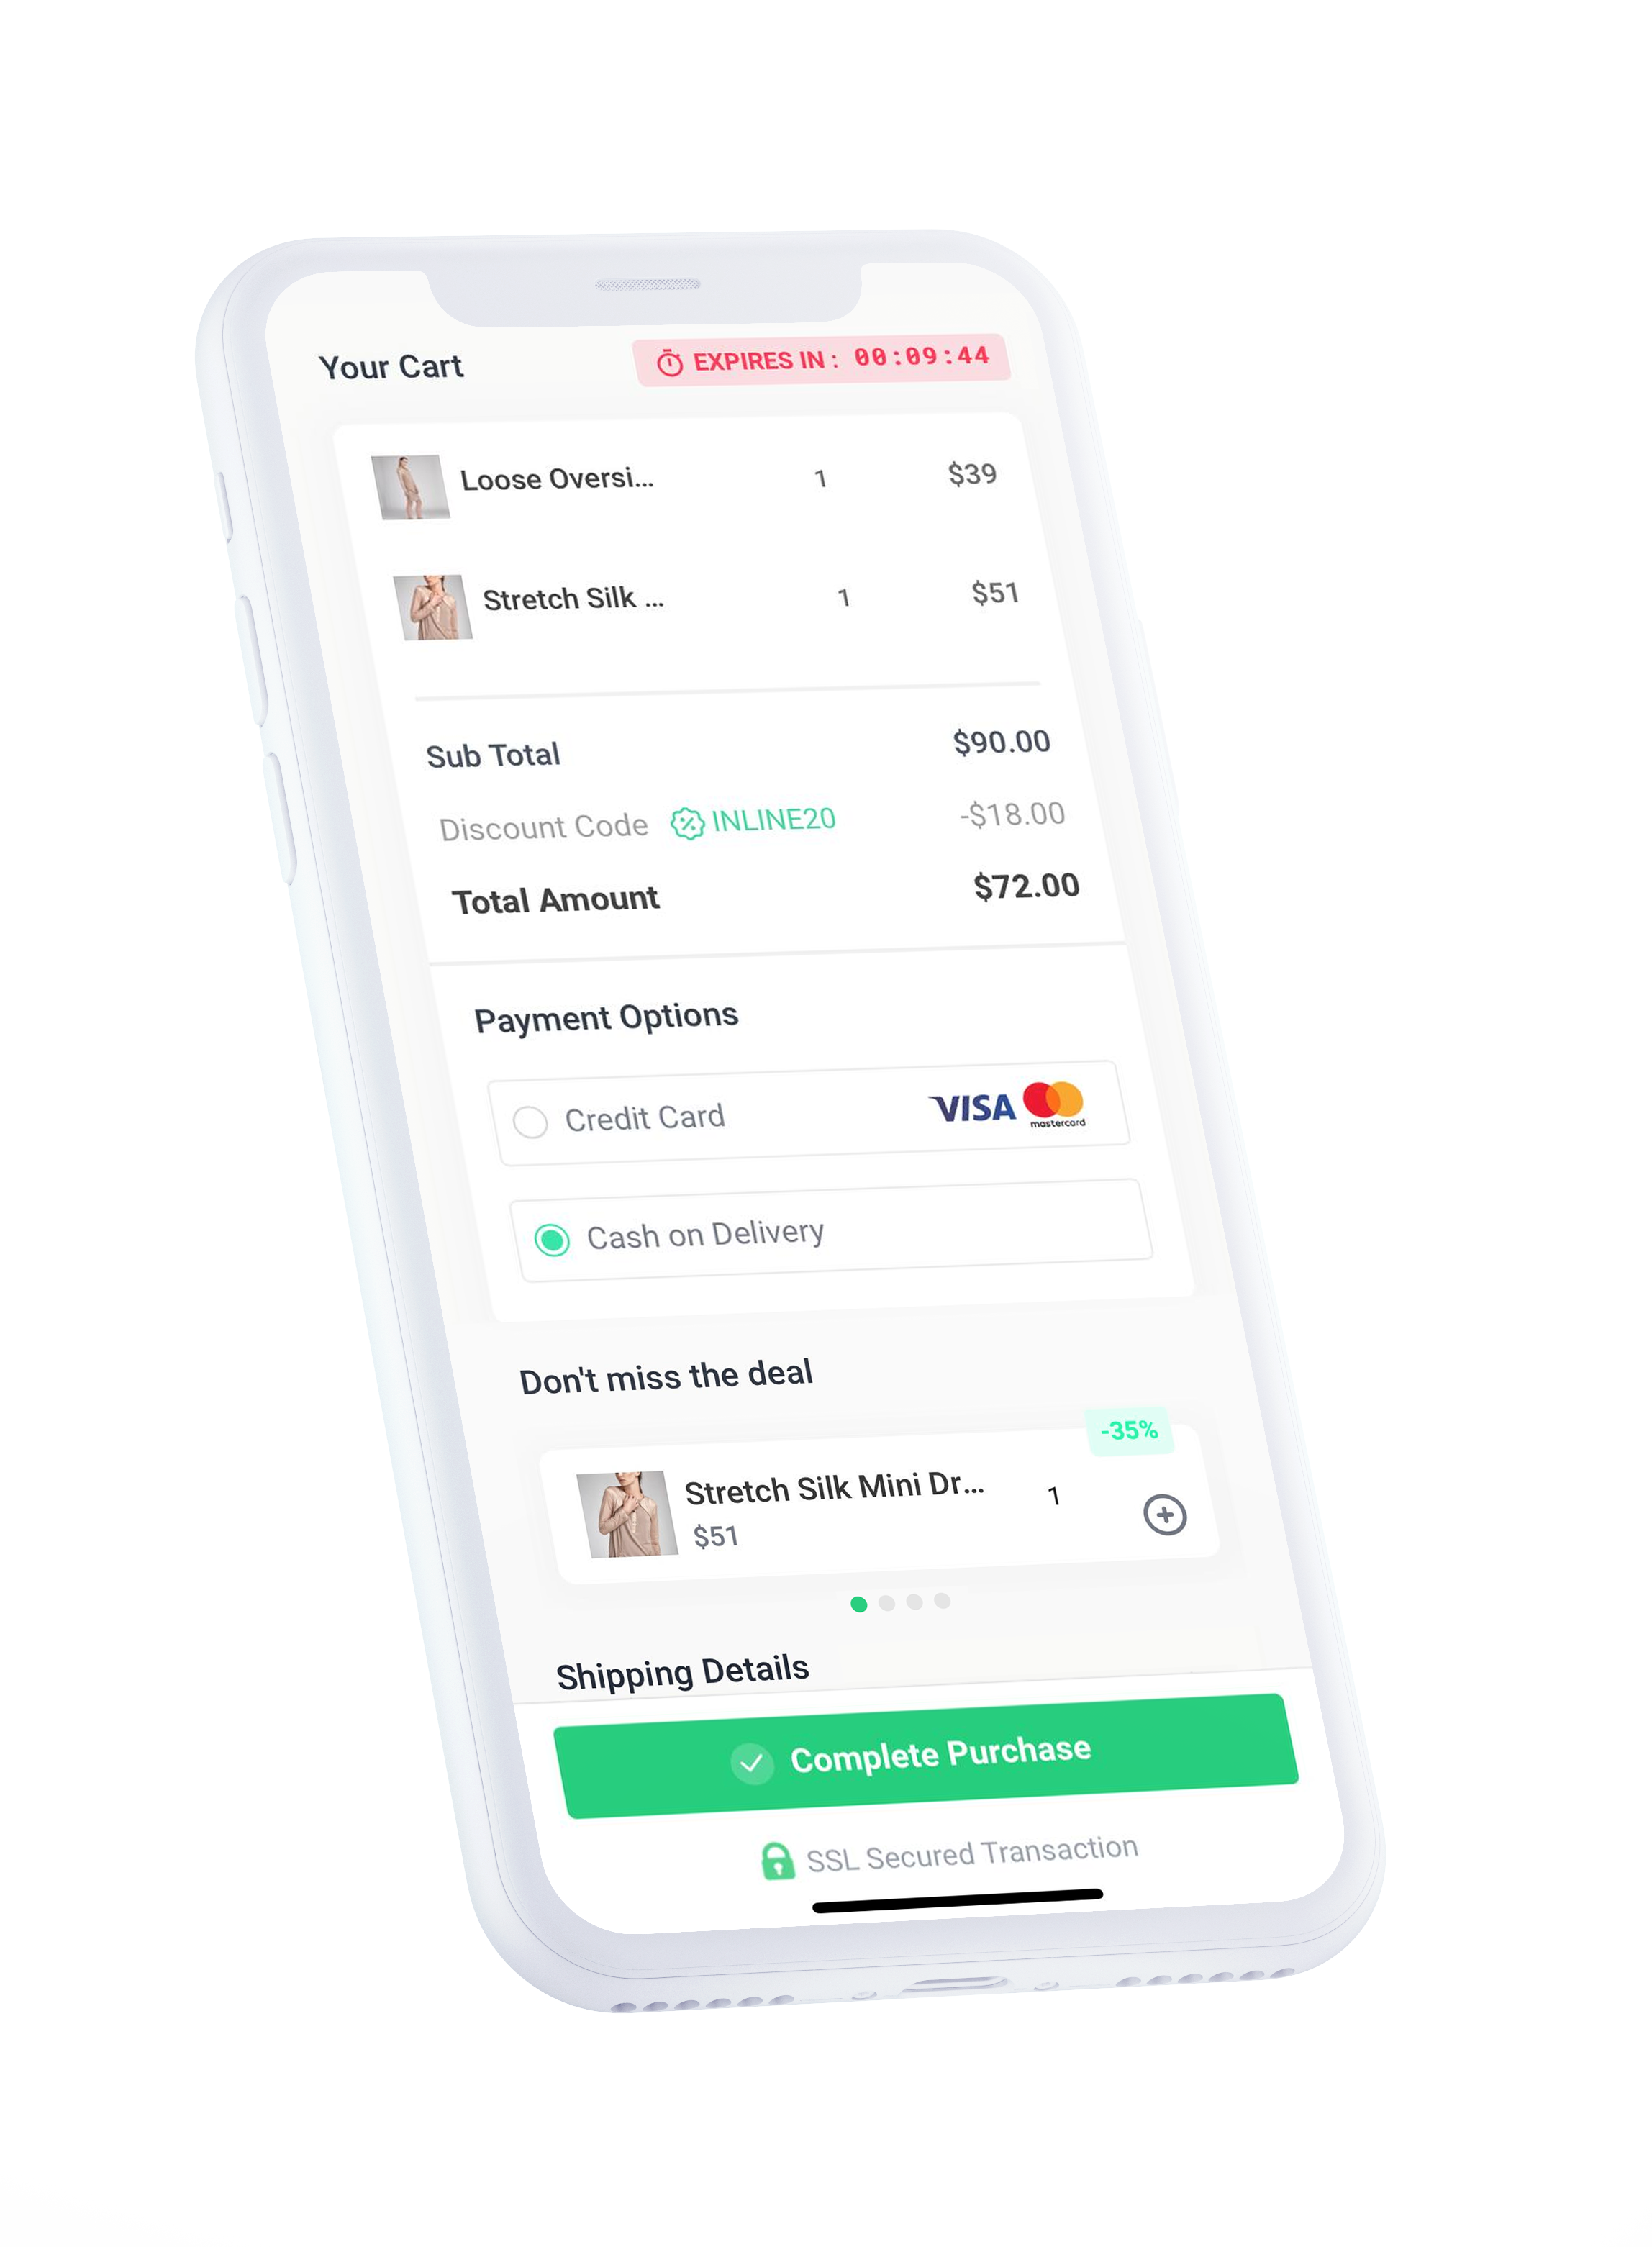 Customer oriented and mobile first checkout that boost sales.